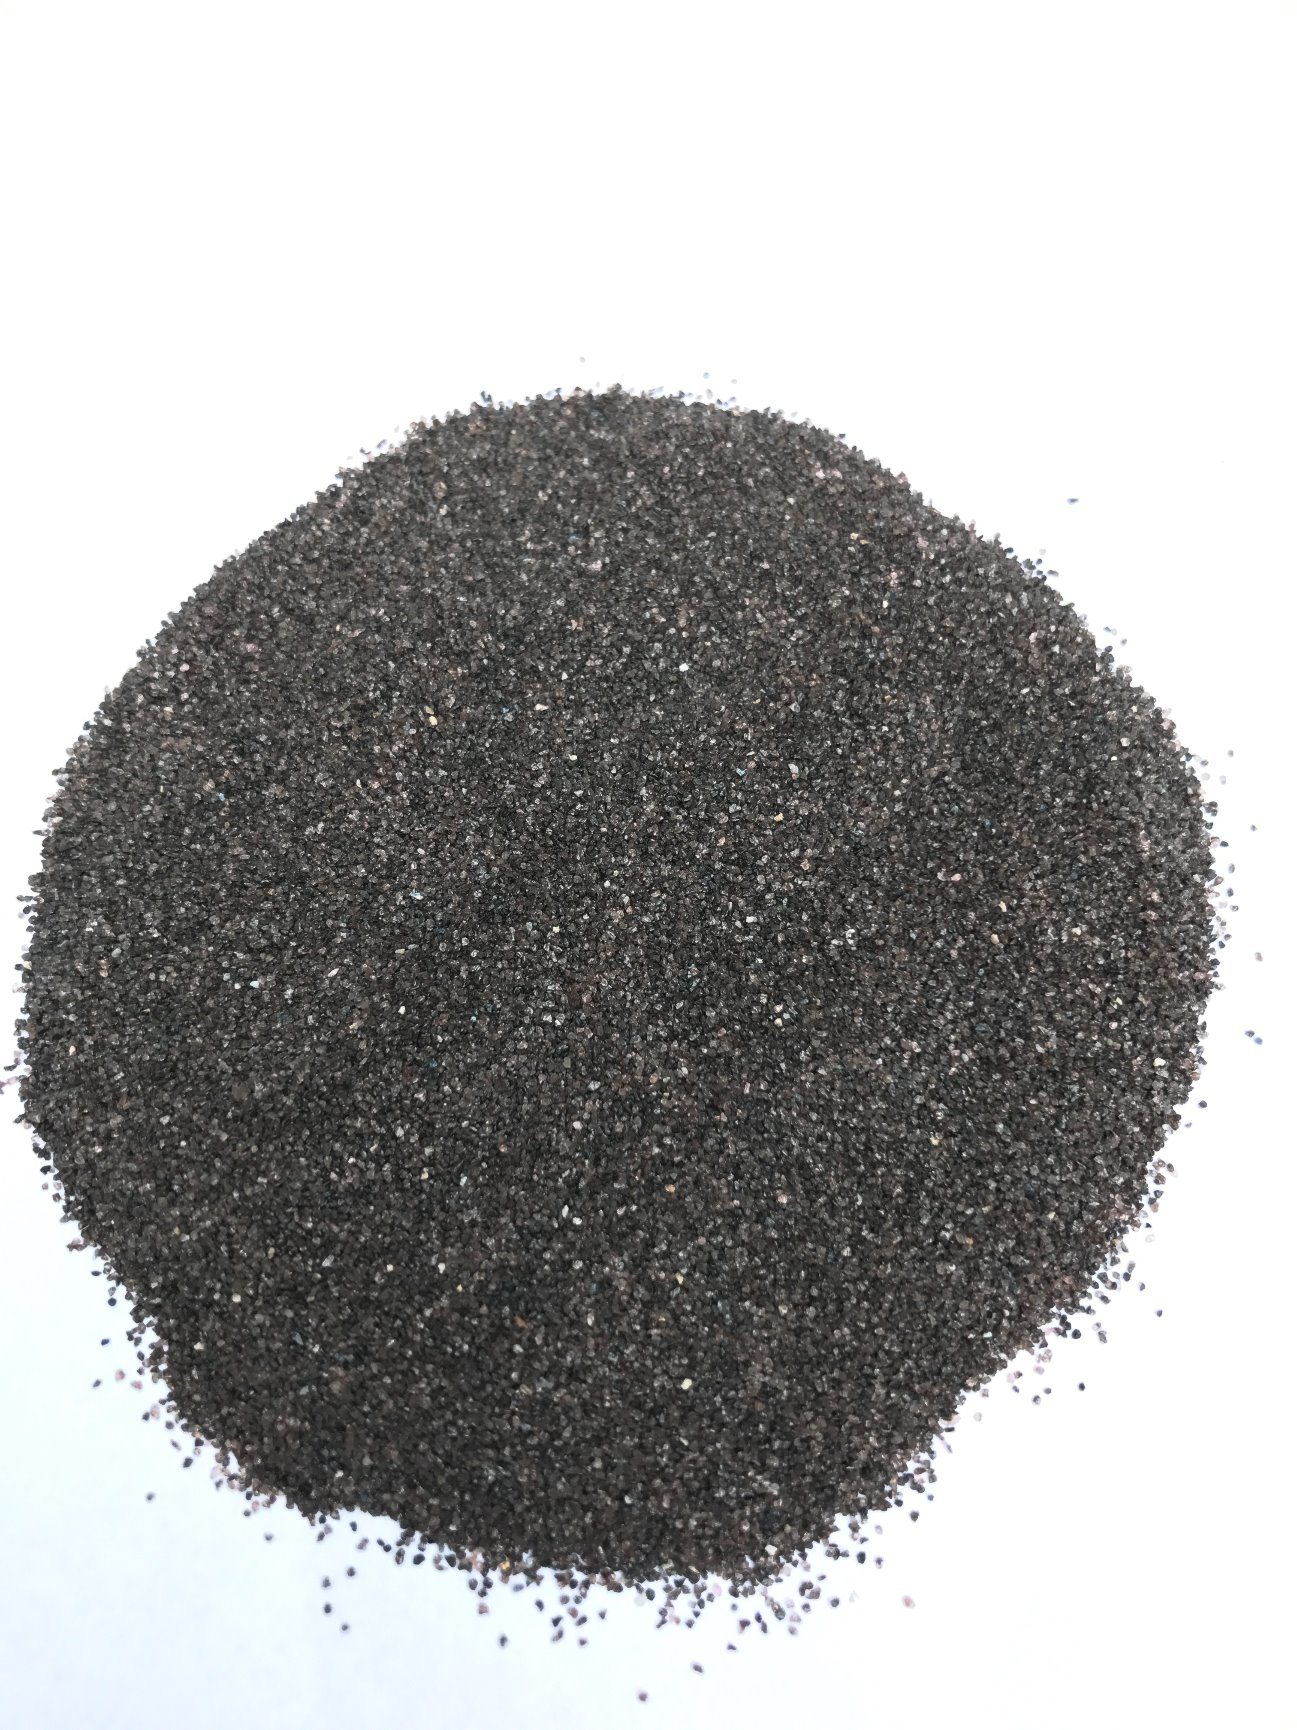 Brown Fused Alumina Fepa Standard F16-F220 for Blasting & Grinding